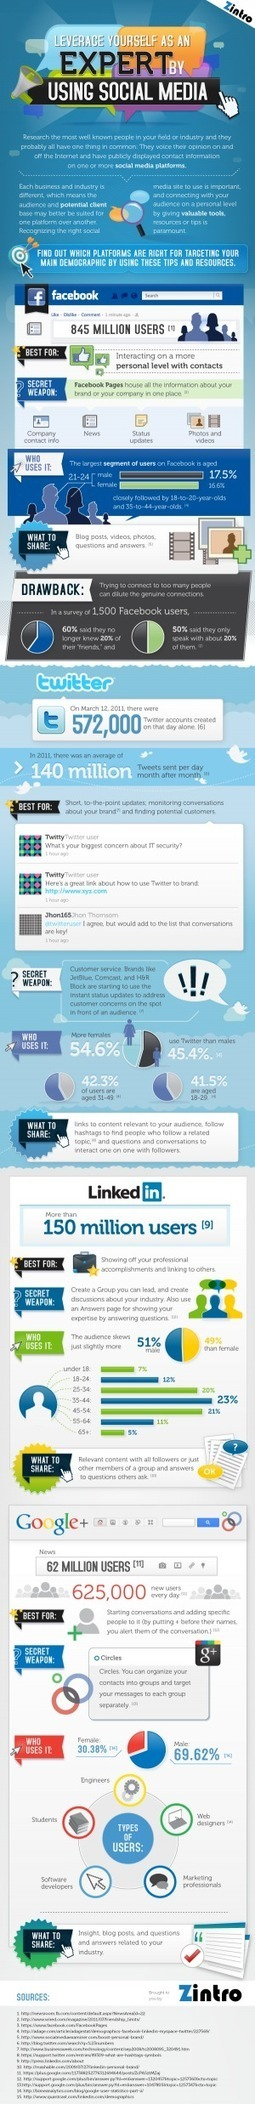 Leveraging Social Media to Showcase Your Expertise[INFOGRAPHIC] | All in one - Social Media ROI | Scoop.it